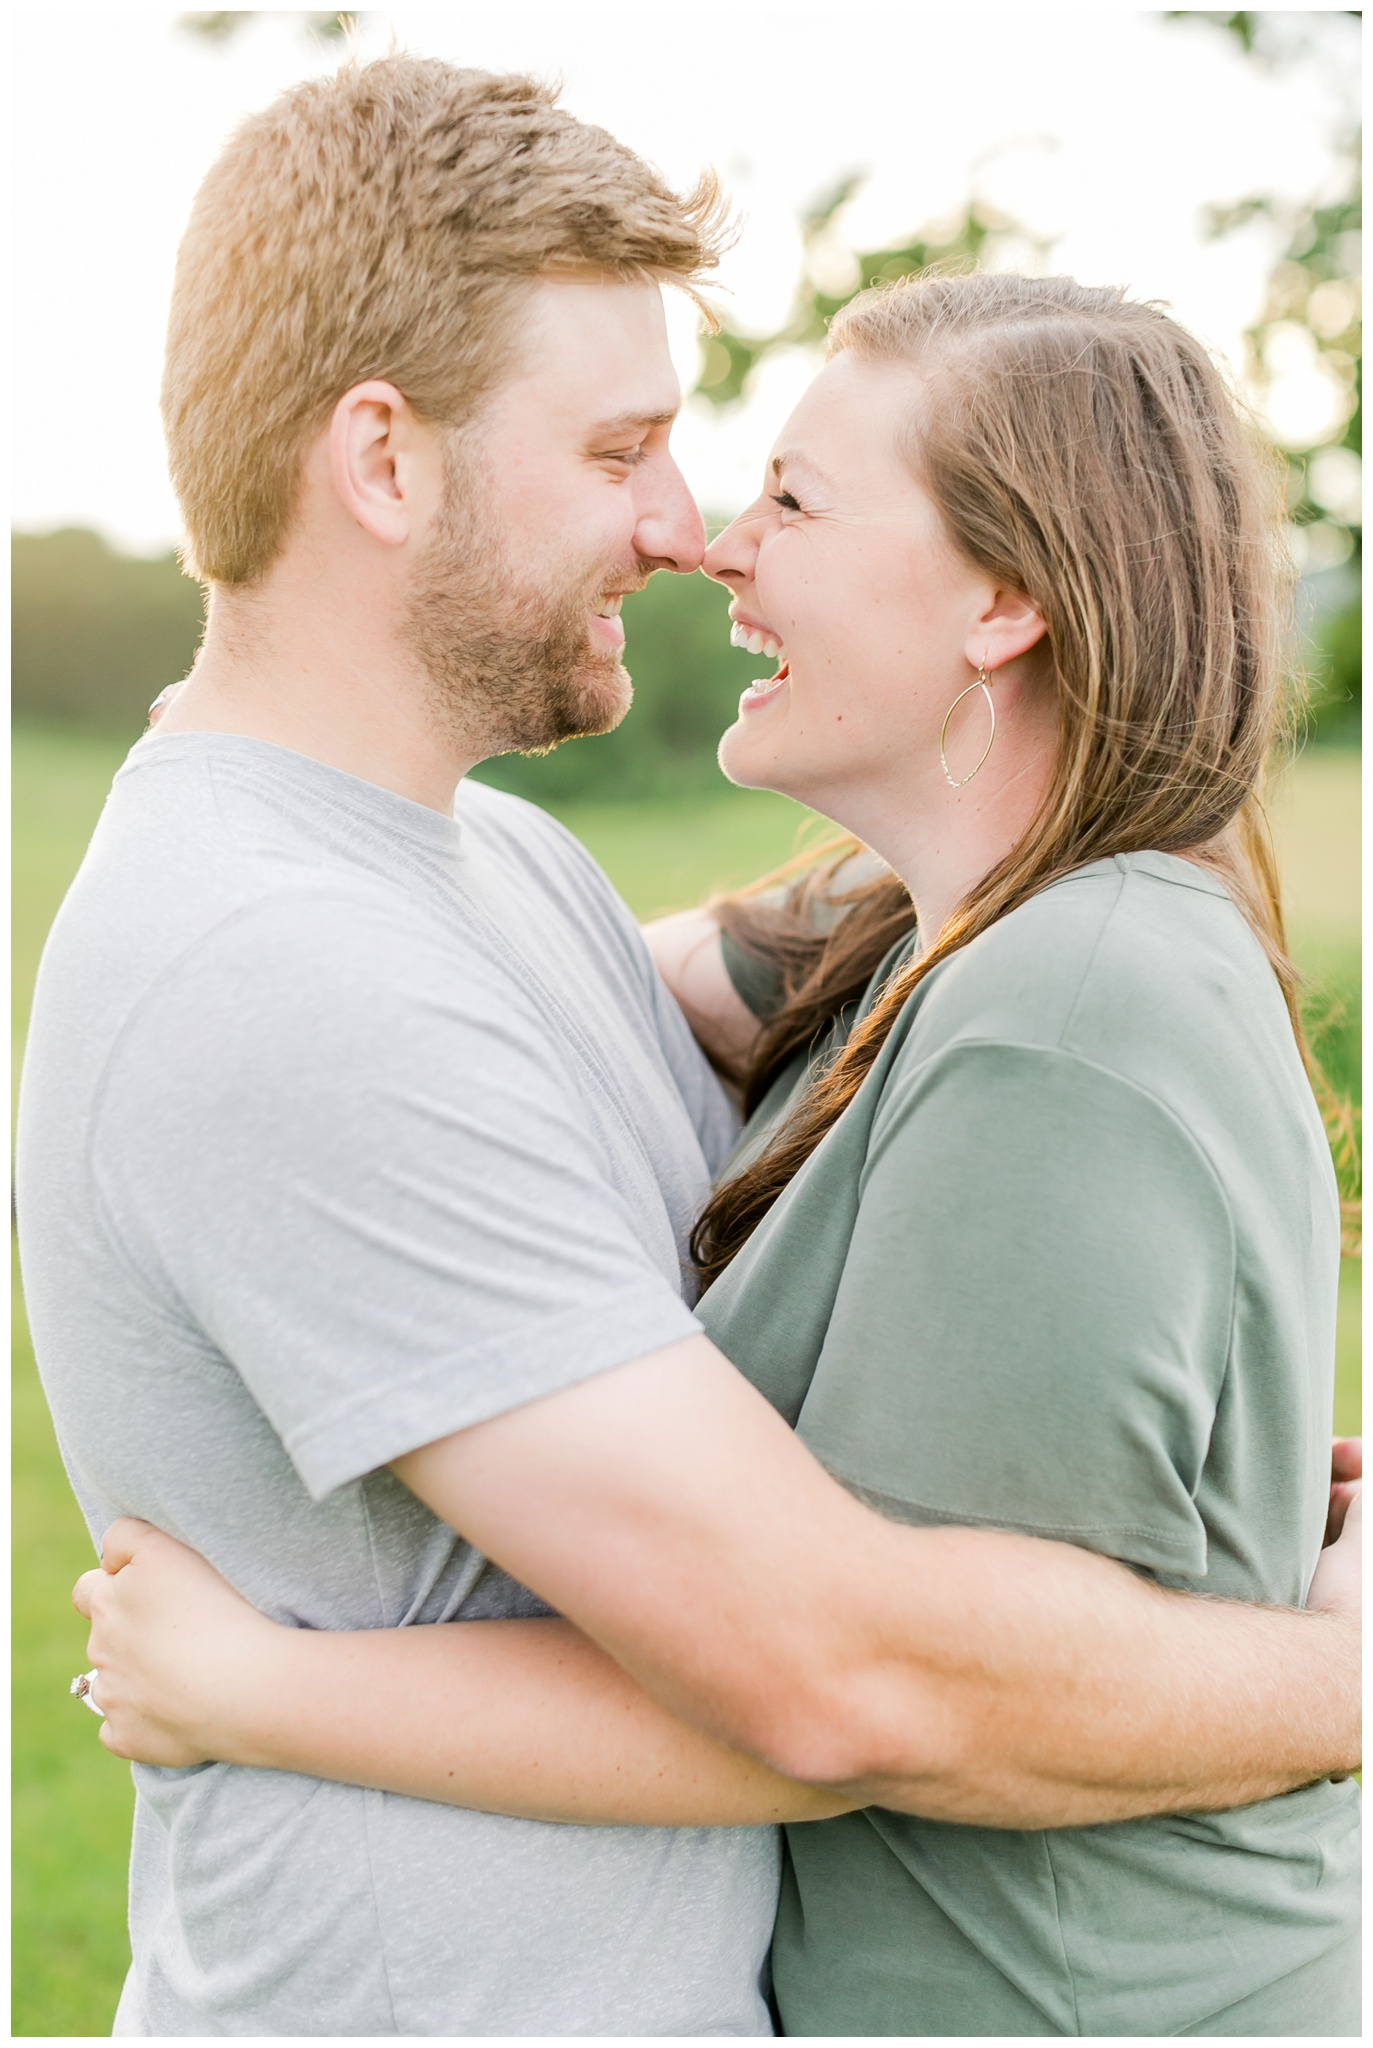 pope_farm_conservancy_engagement_session_madison_wisconsin_engagement_photographers_4148.jpg